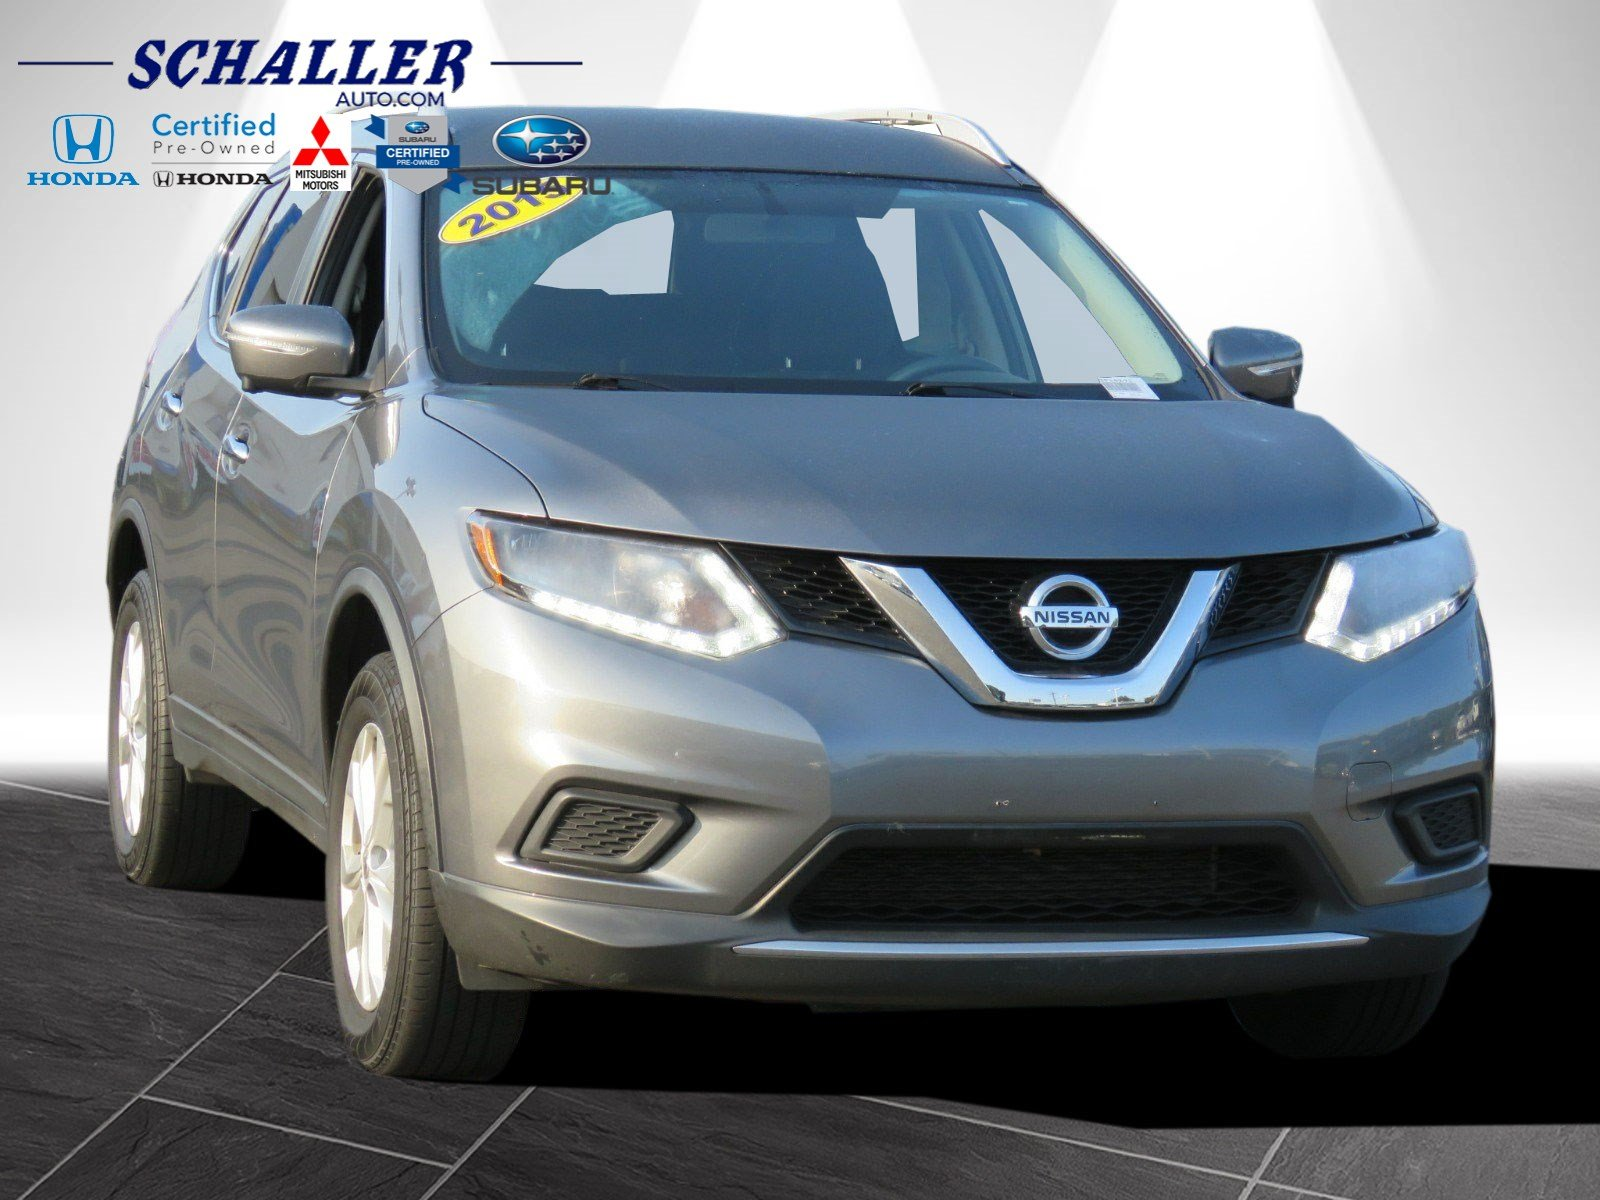 Nissan Rogue Owners Manual: Monitor, climate, audio, phone and voice recognition systems